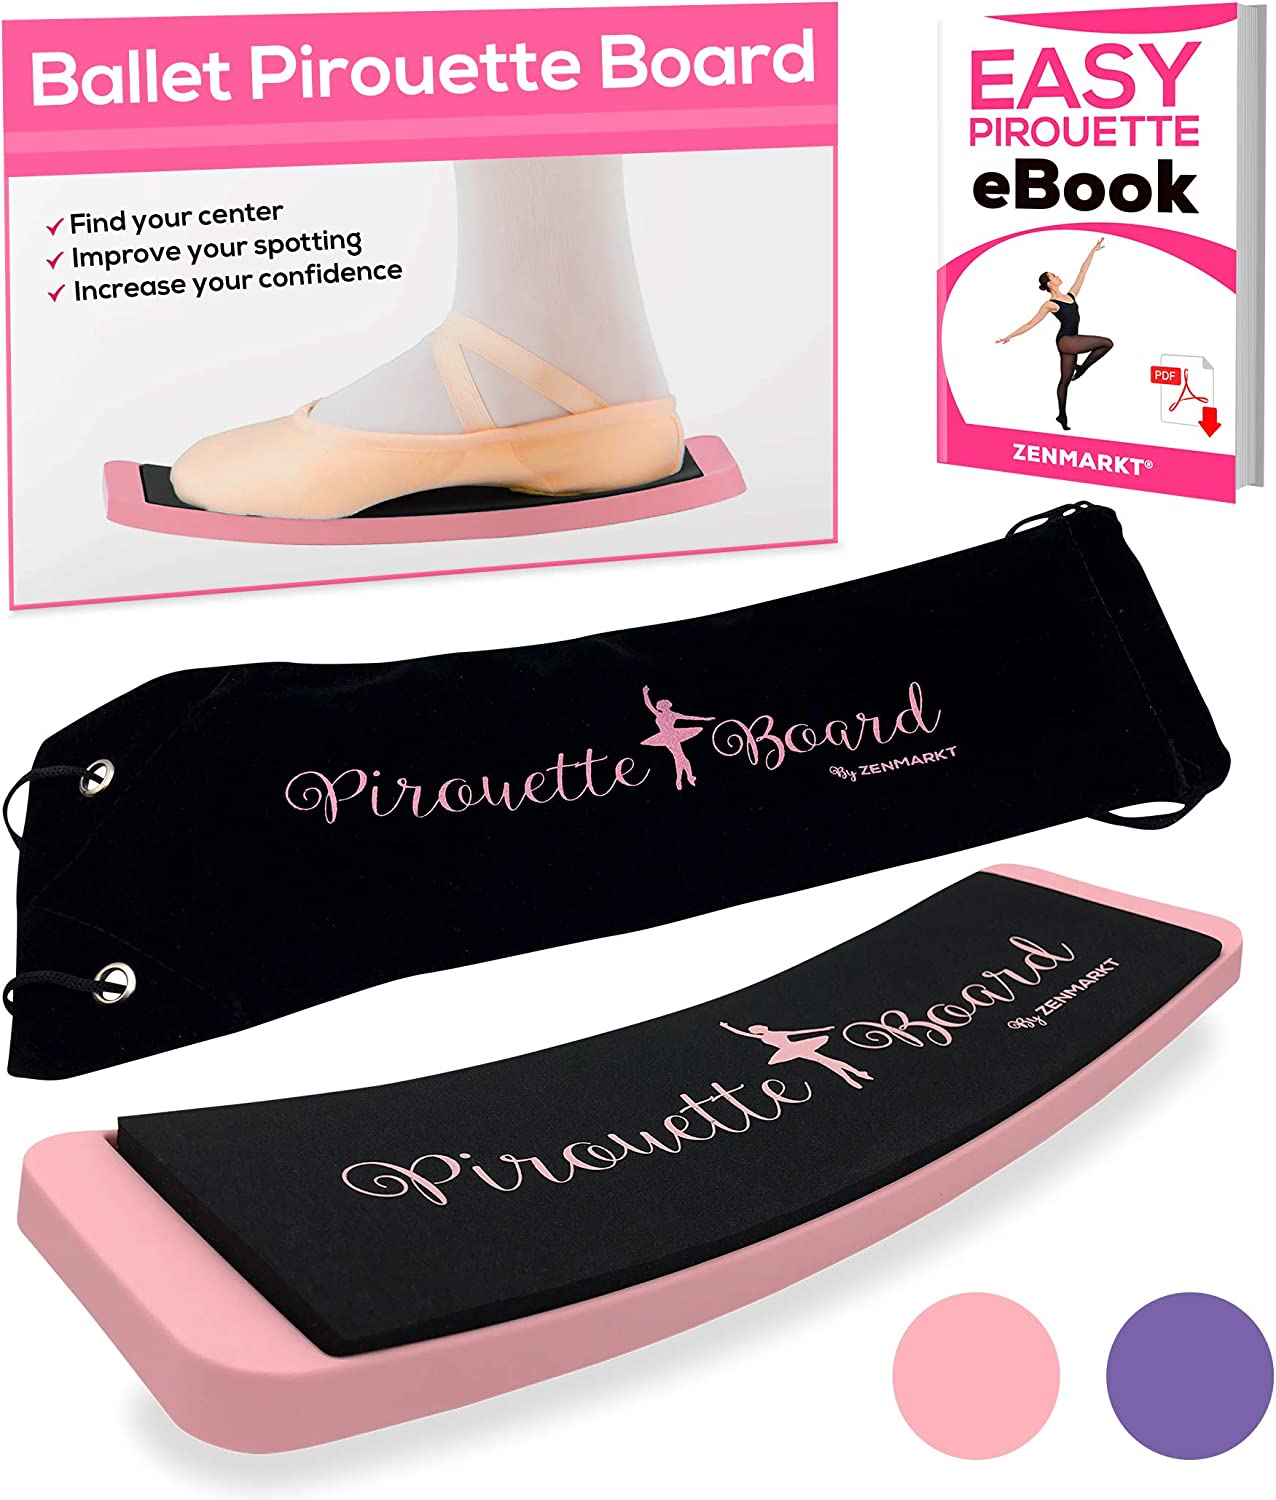 Ballet is Fun Turnboard Pirouette Trainer